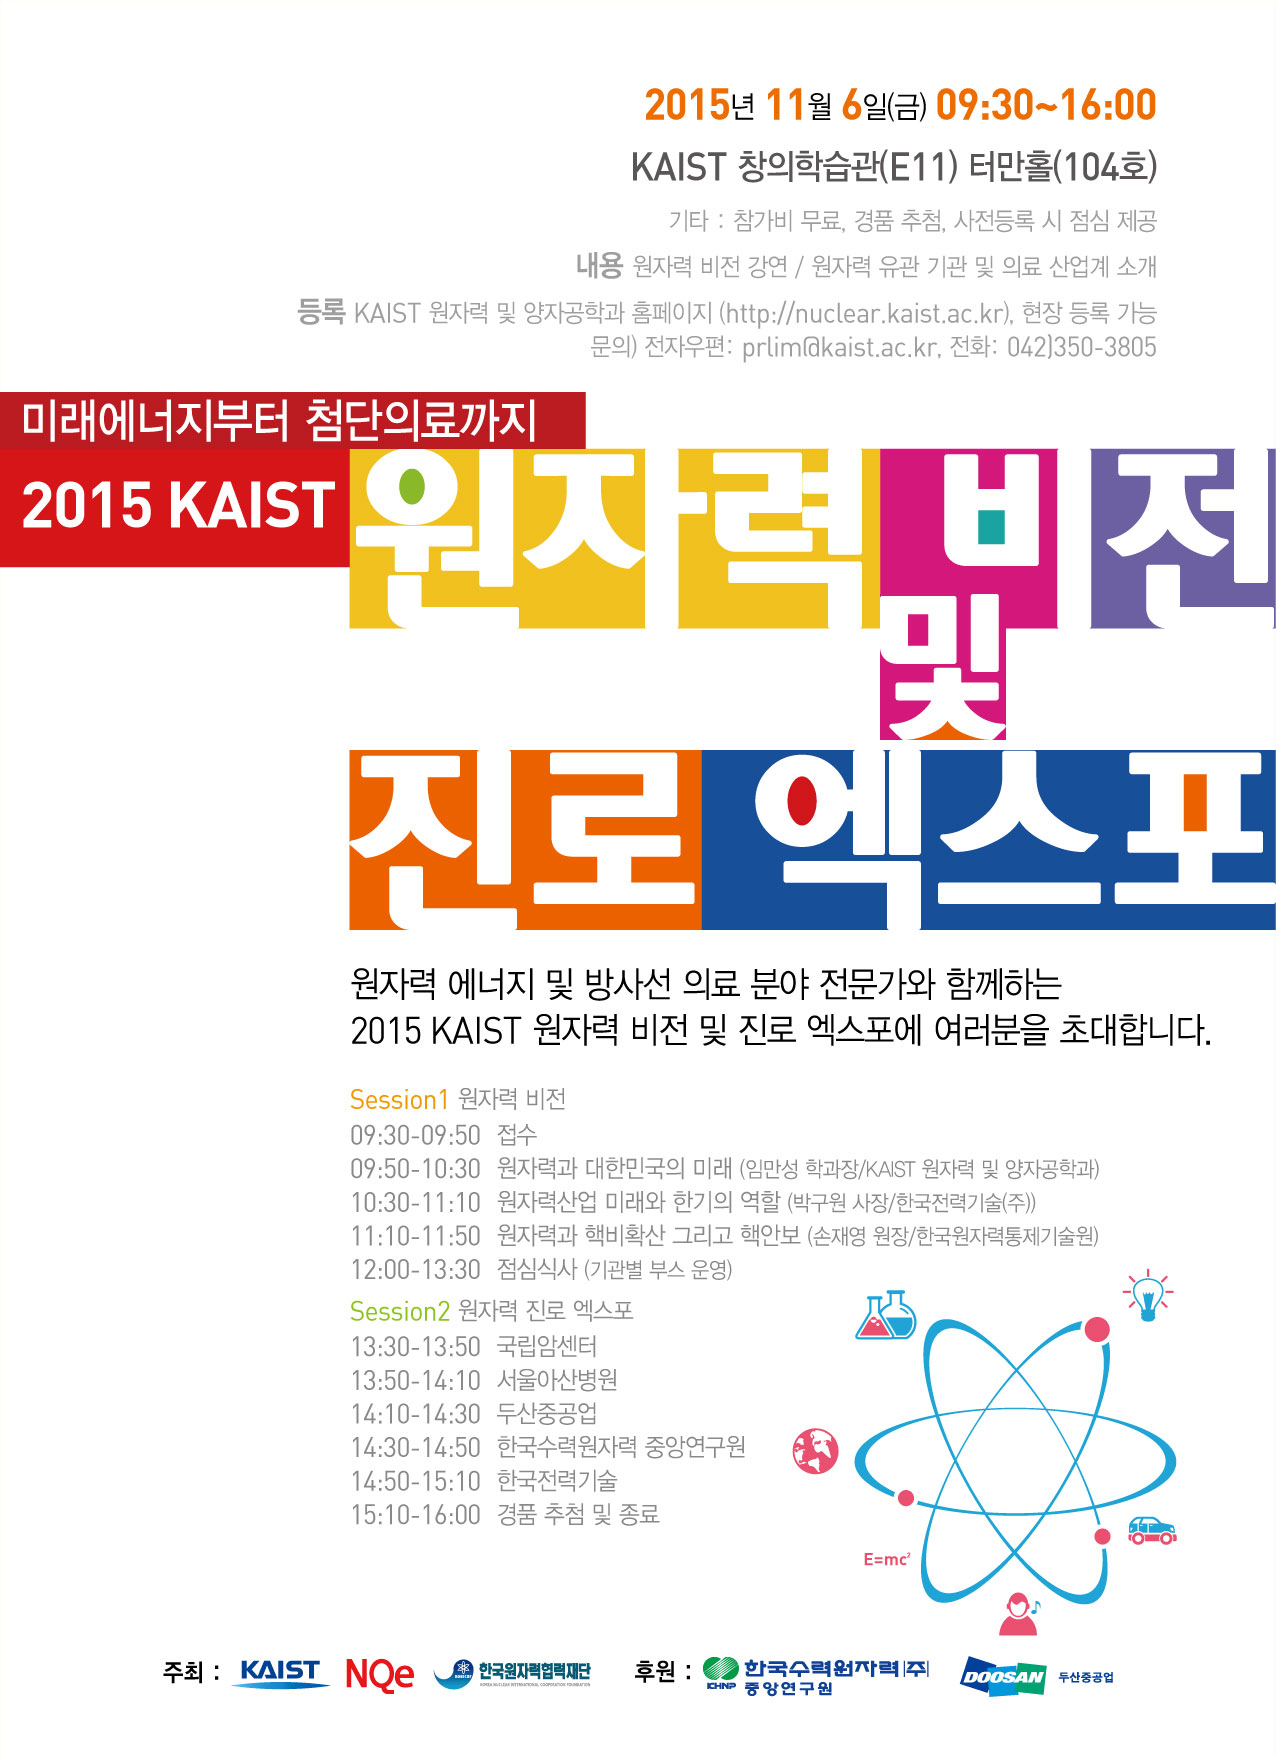 KAIST NUCLEAR VISION AND CAREER EXPO 2015 (Poster).jpg